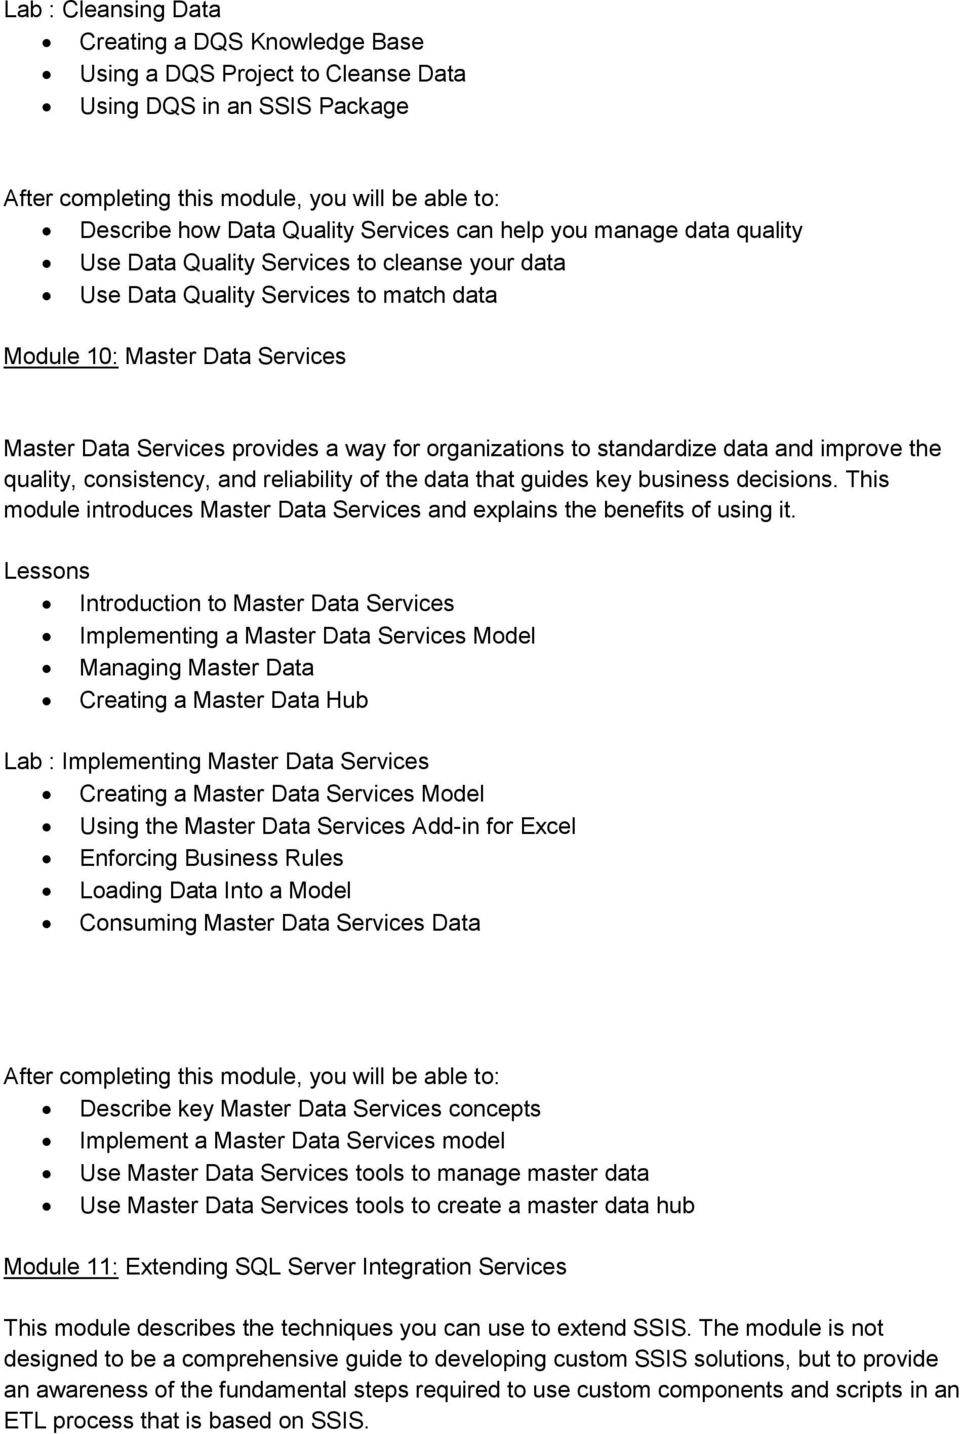 quality, consistency, and reliability of the data that guides key business decisions. This module introduces Master Data Services and explains the benefits of using it.